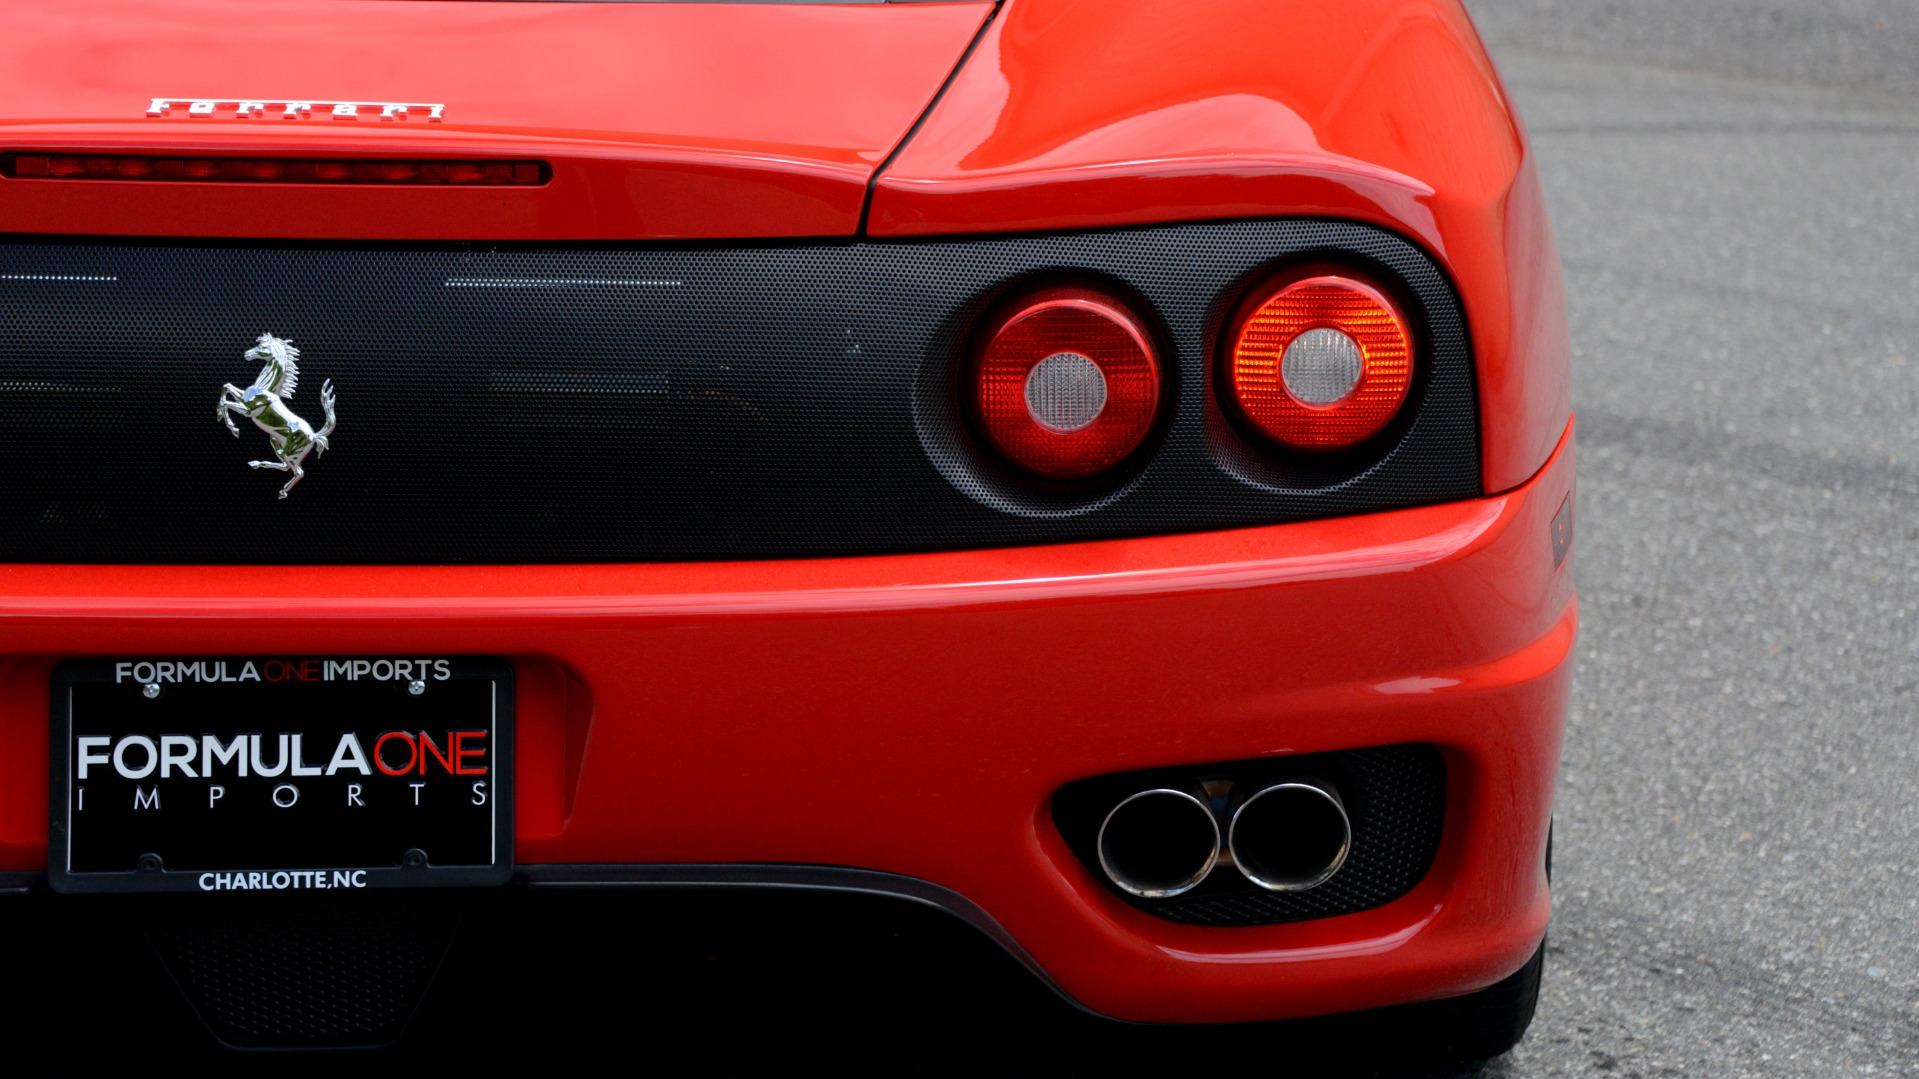 Used 2004 Ferrari 360 MODENA COUPE / GATED 6-SPD MANUAL / SUNROOF / LOW MILES for sale $89,995 at Formula Imports in Charlotte NC 28227 69